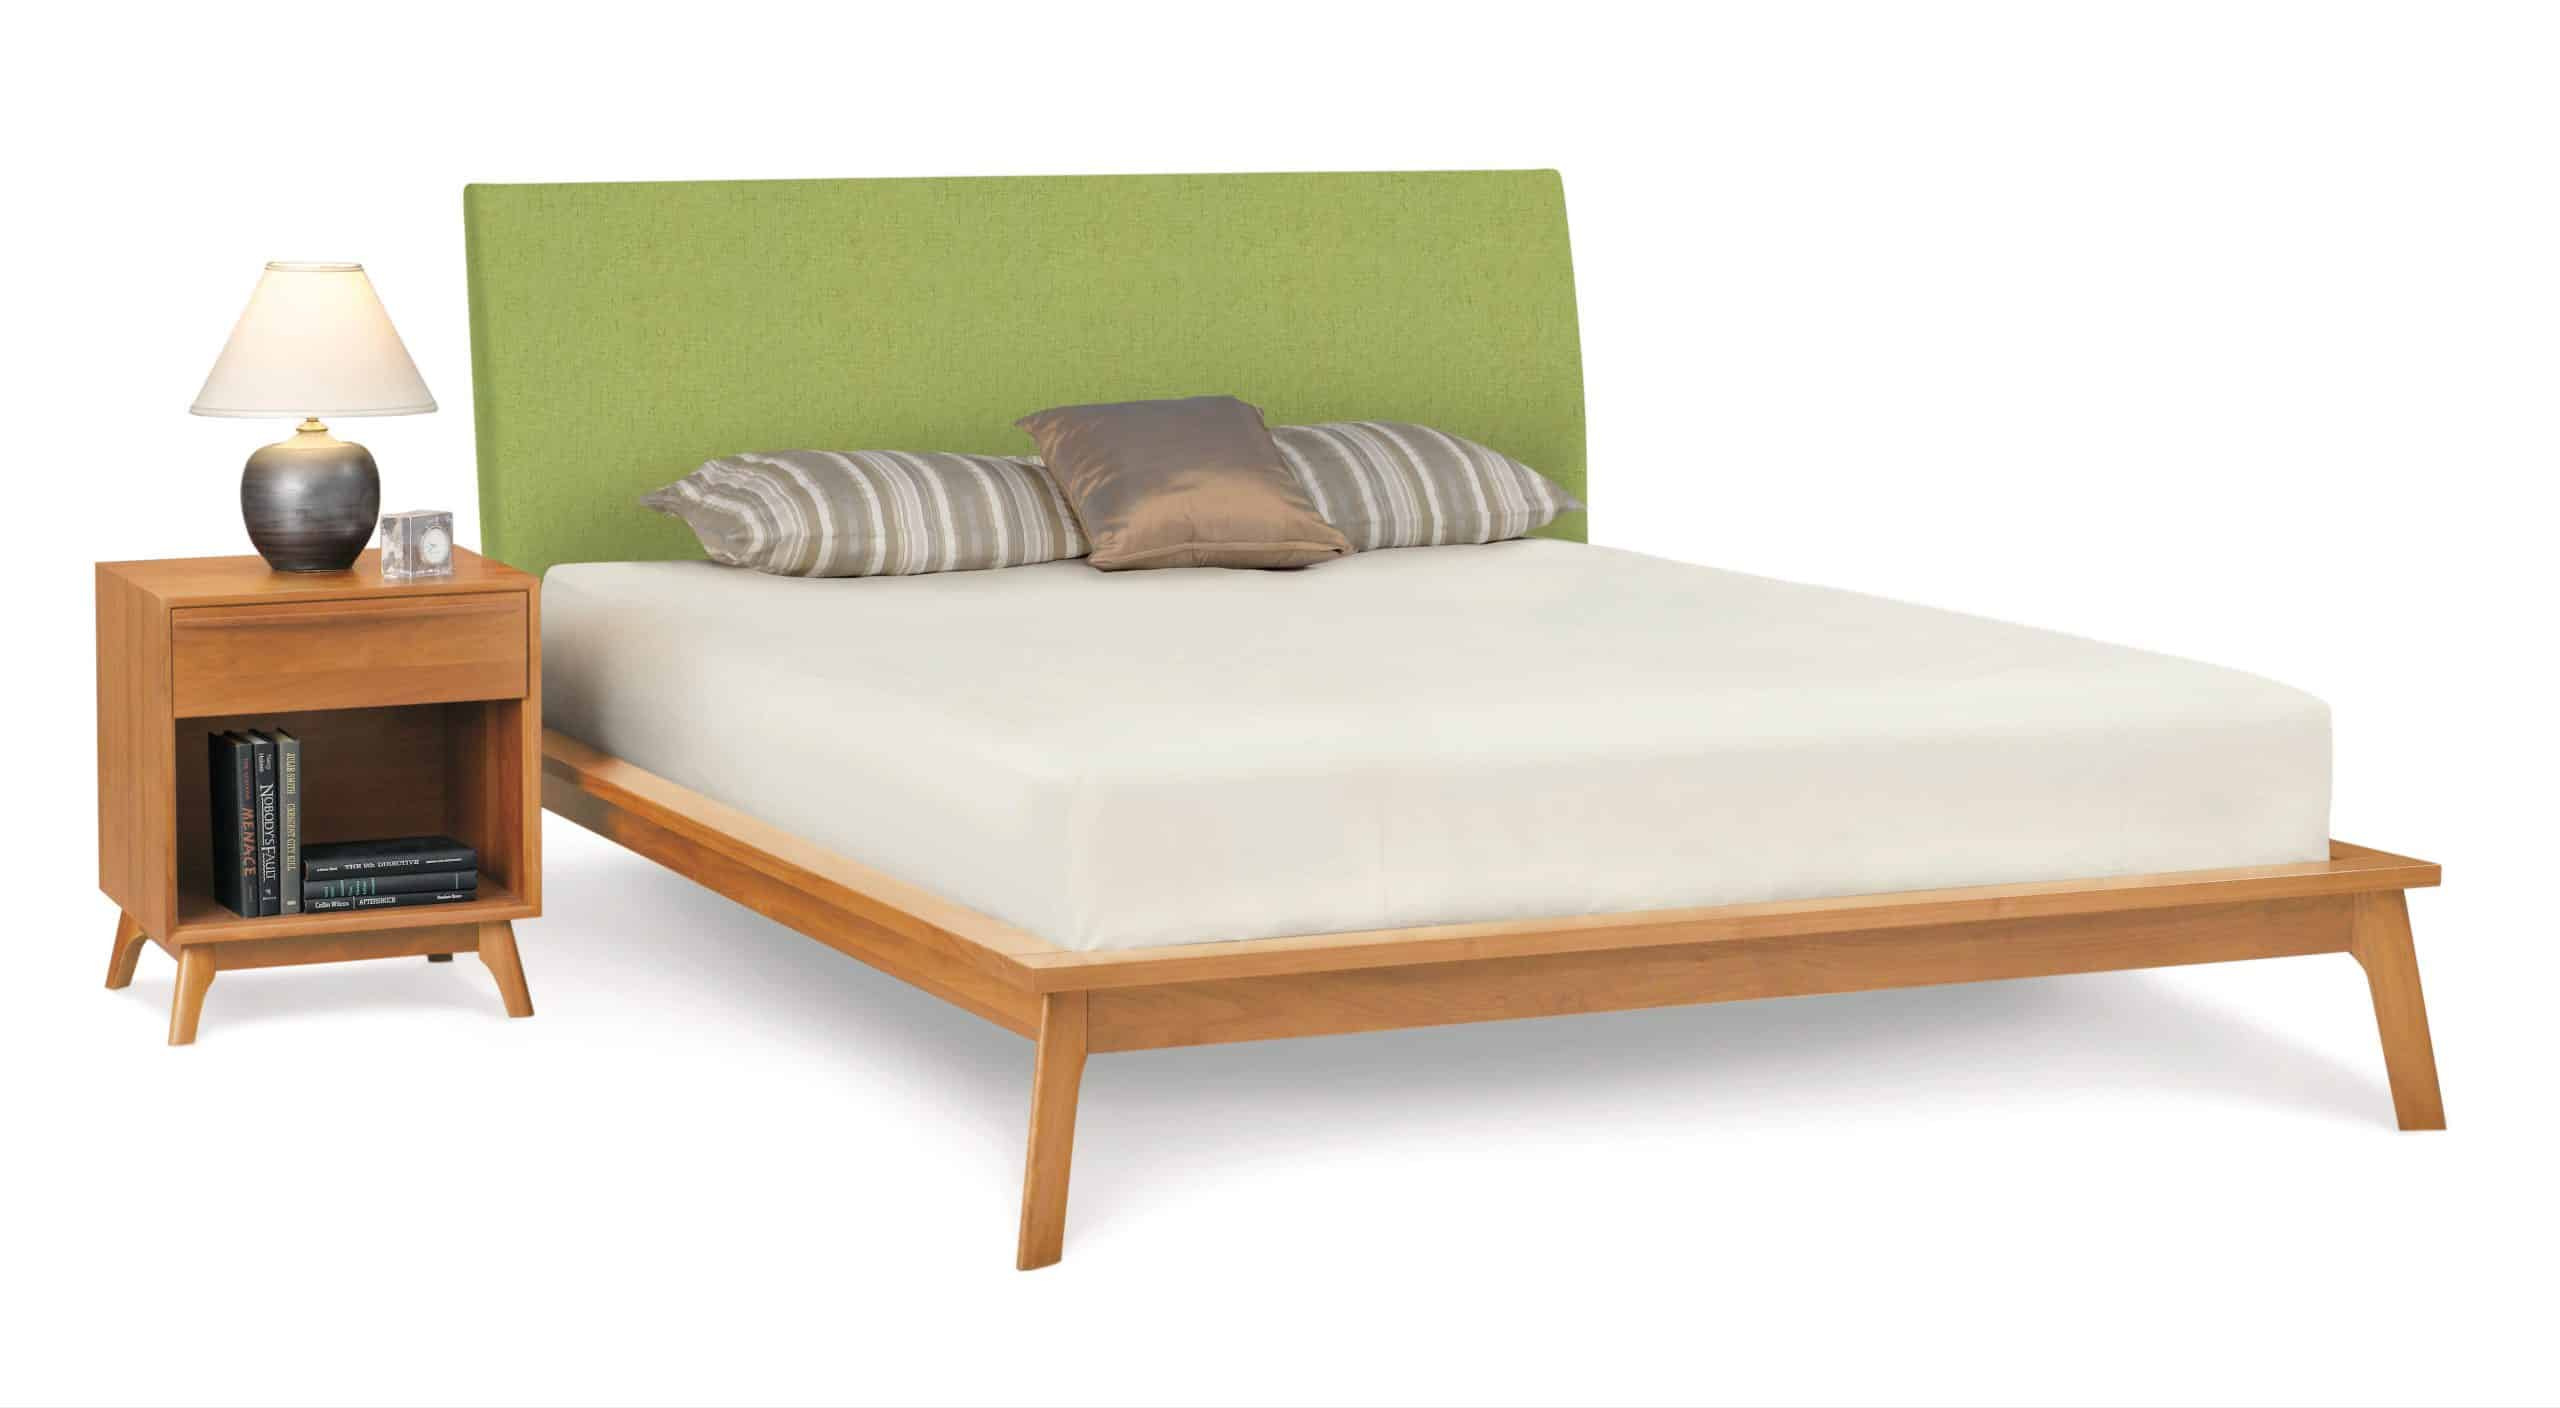 CatalinaUphPanelBed40in1DrawerCherry[1]